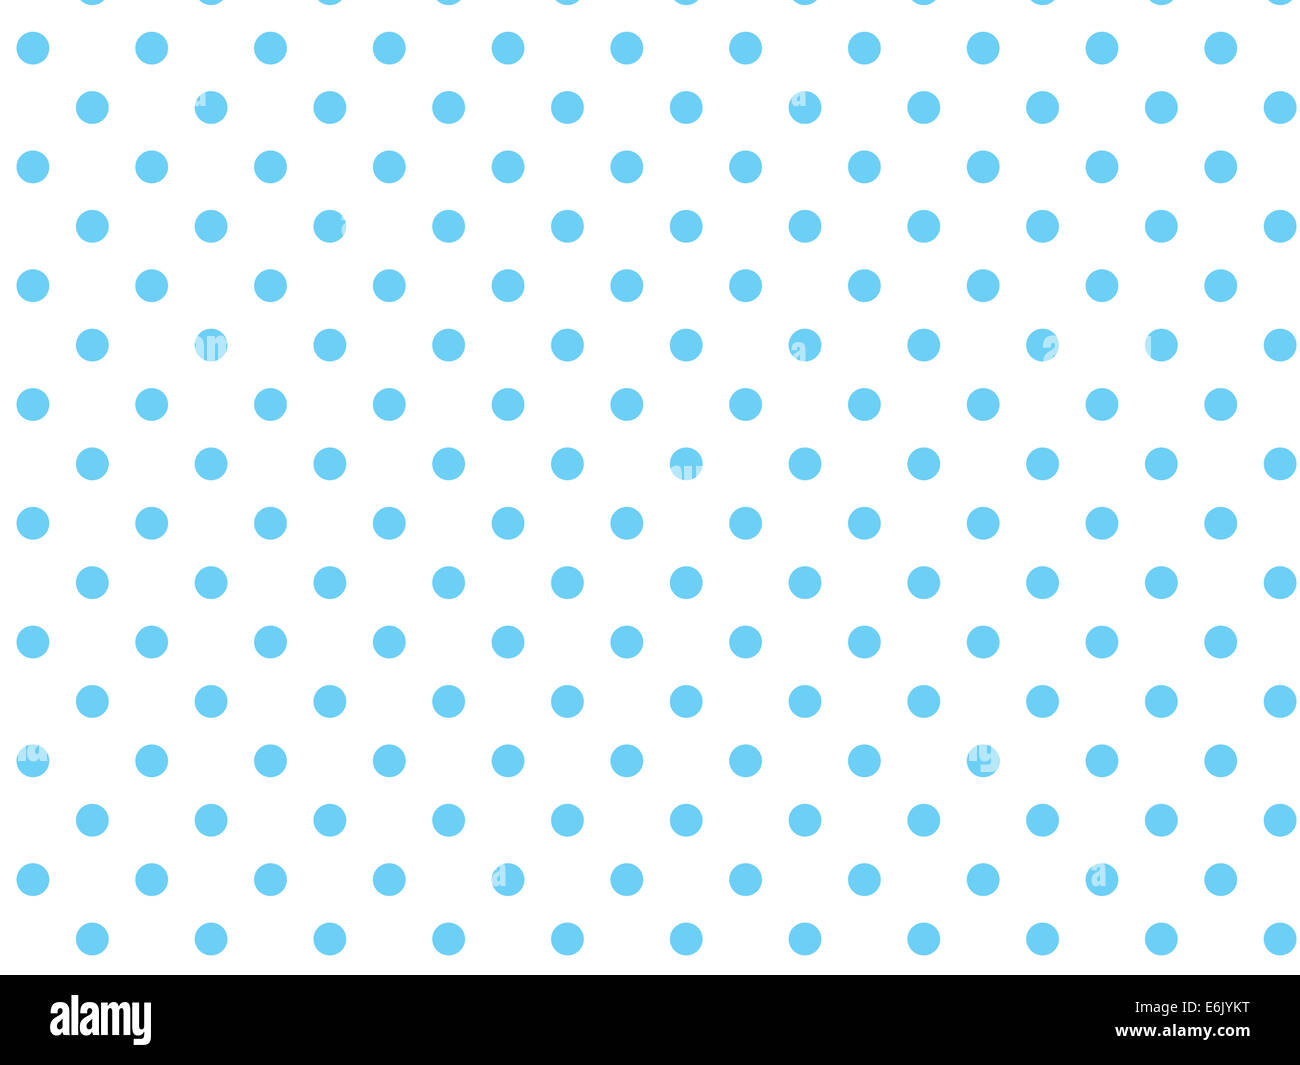 White Background With Blue Polka Dots Jpg Stock Photo